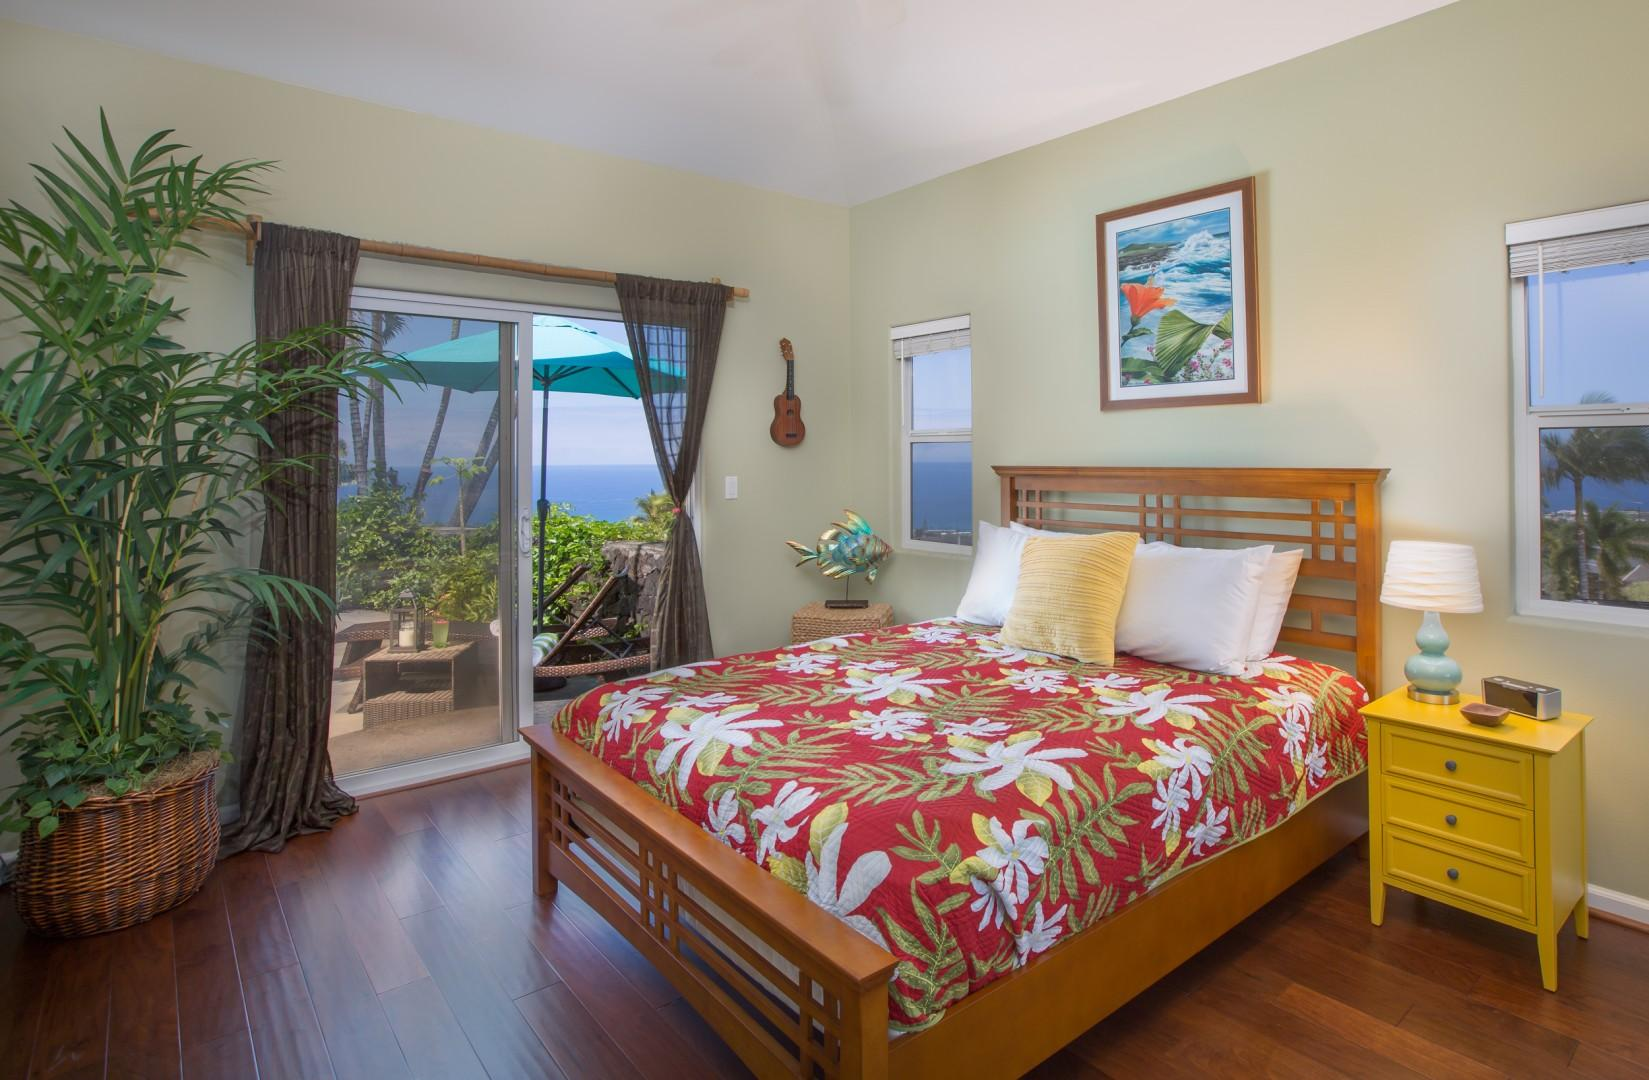 Second bedroom, with access out of glass sliders onto back lanai by the pool.